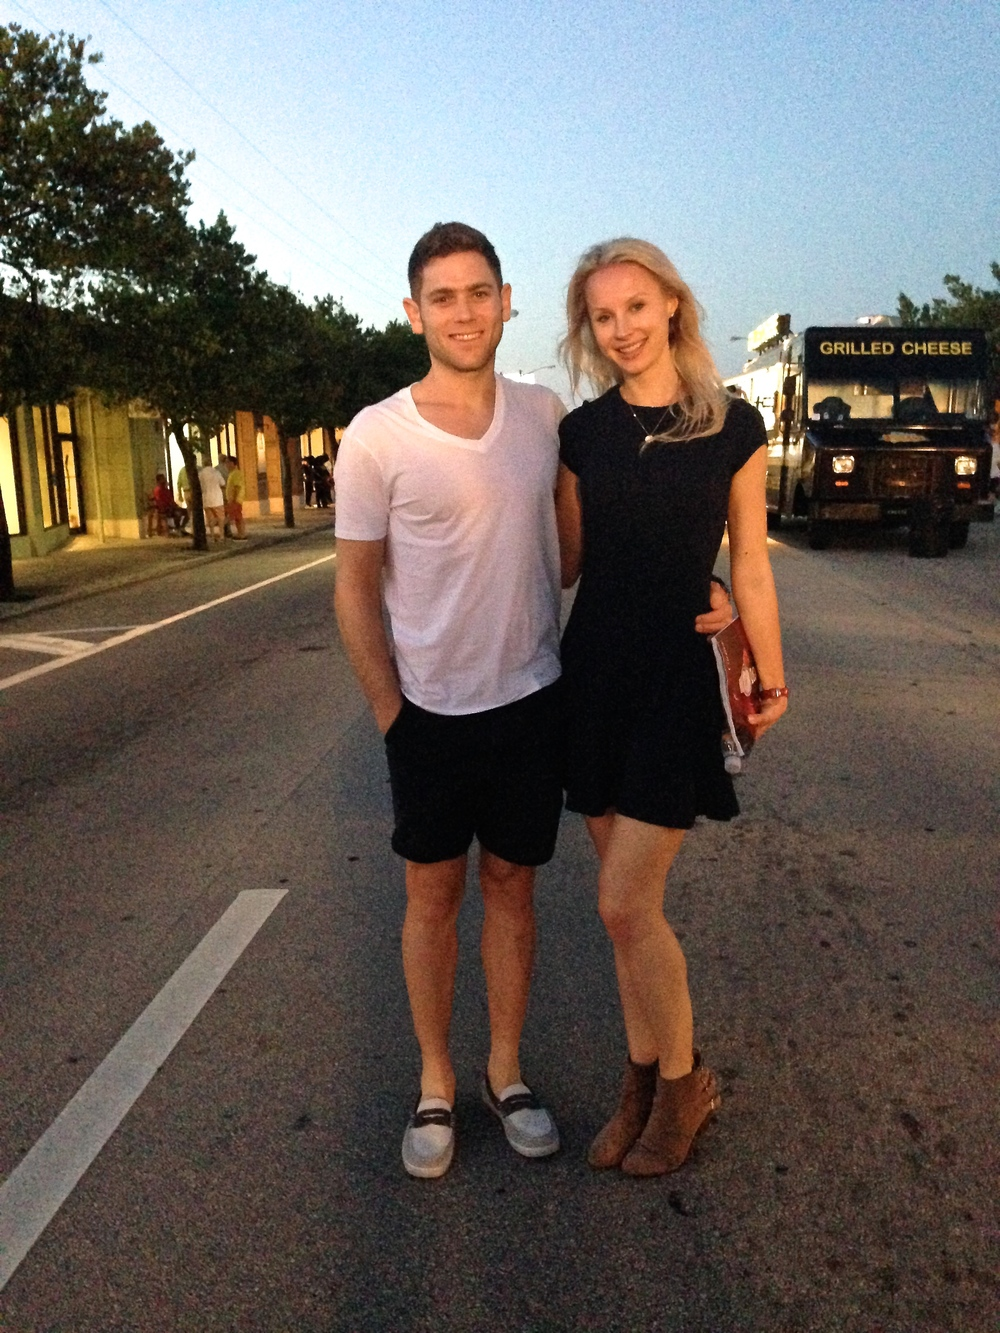 Me and Jon at a West Palm Beach street fair this month.  I'm feeling my best since modifying my workout routine.